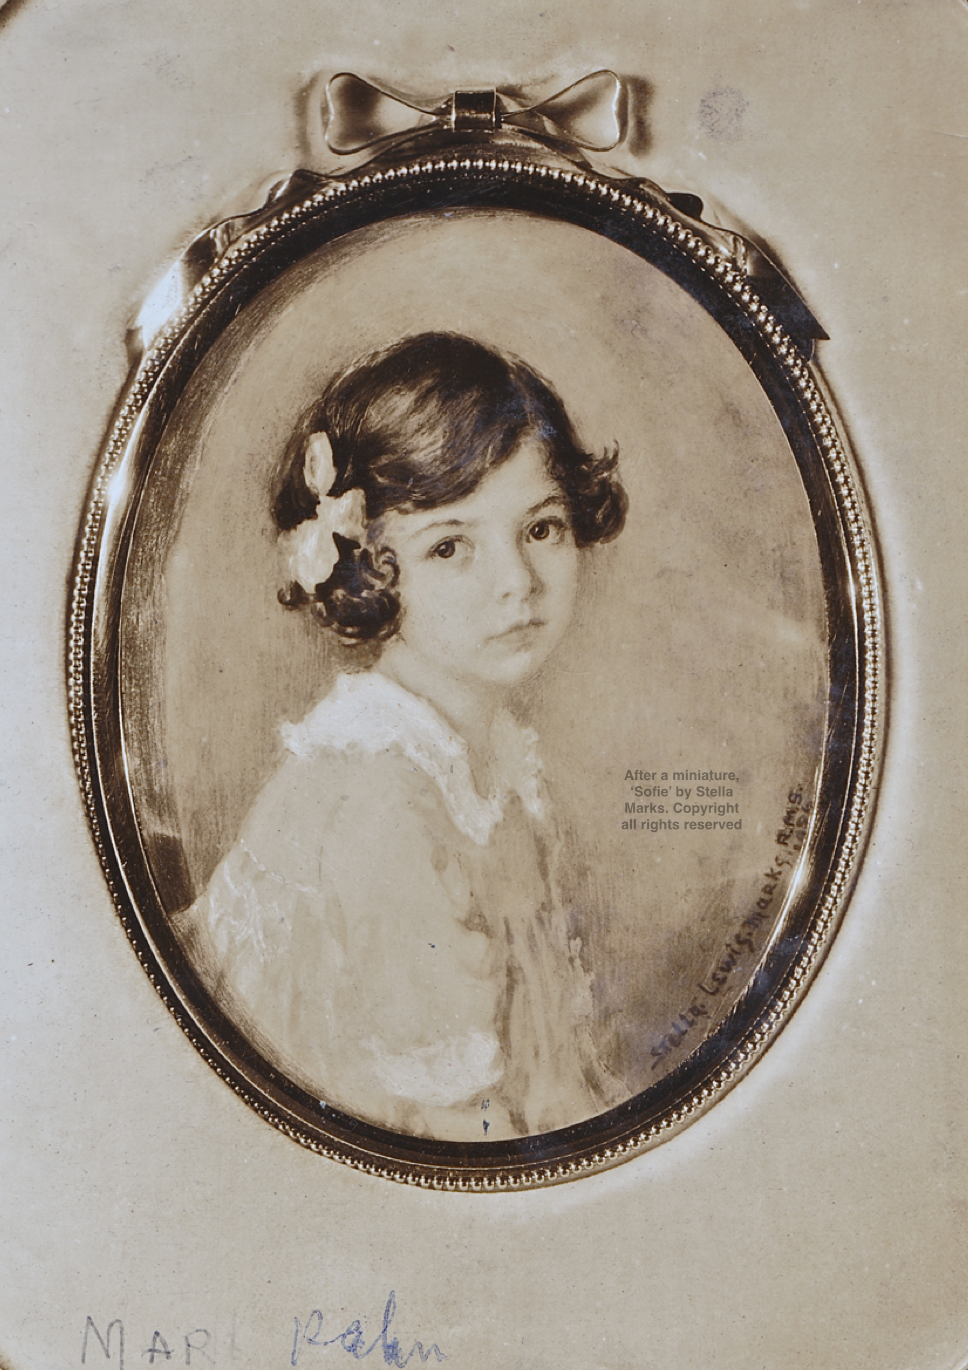 After a miniature, 'Sofie'/ Miss Martlyn Kaura or Marilyn Kawn, by Stella Marks, 1926. Copyright Stella Marks' Estate all rights reserved